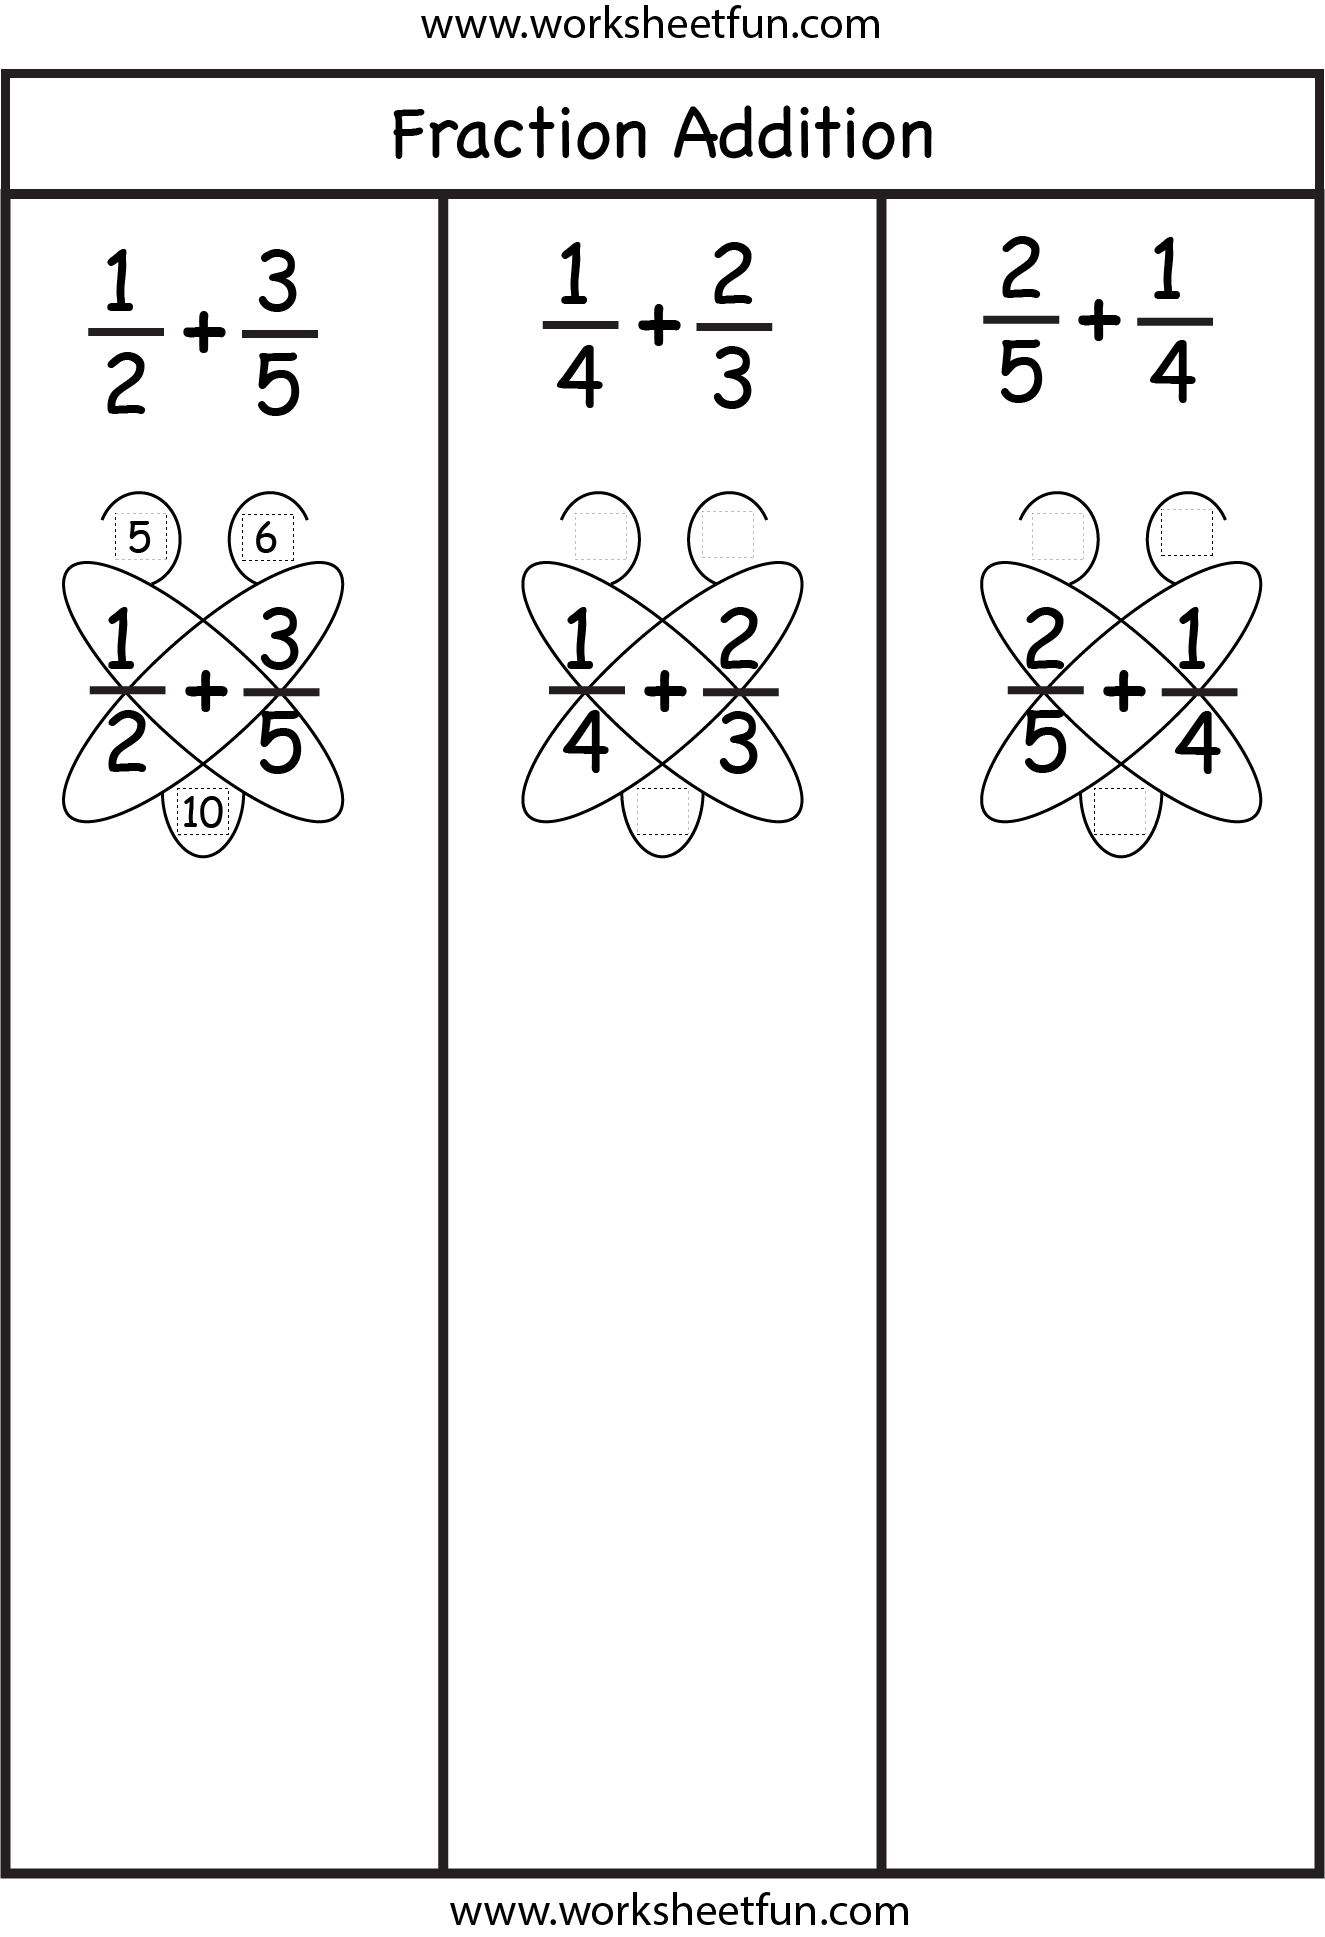 Fraction Addition Butterfly Method Free Printable Worksheets Worksheetfun